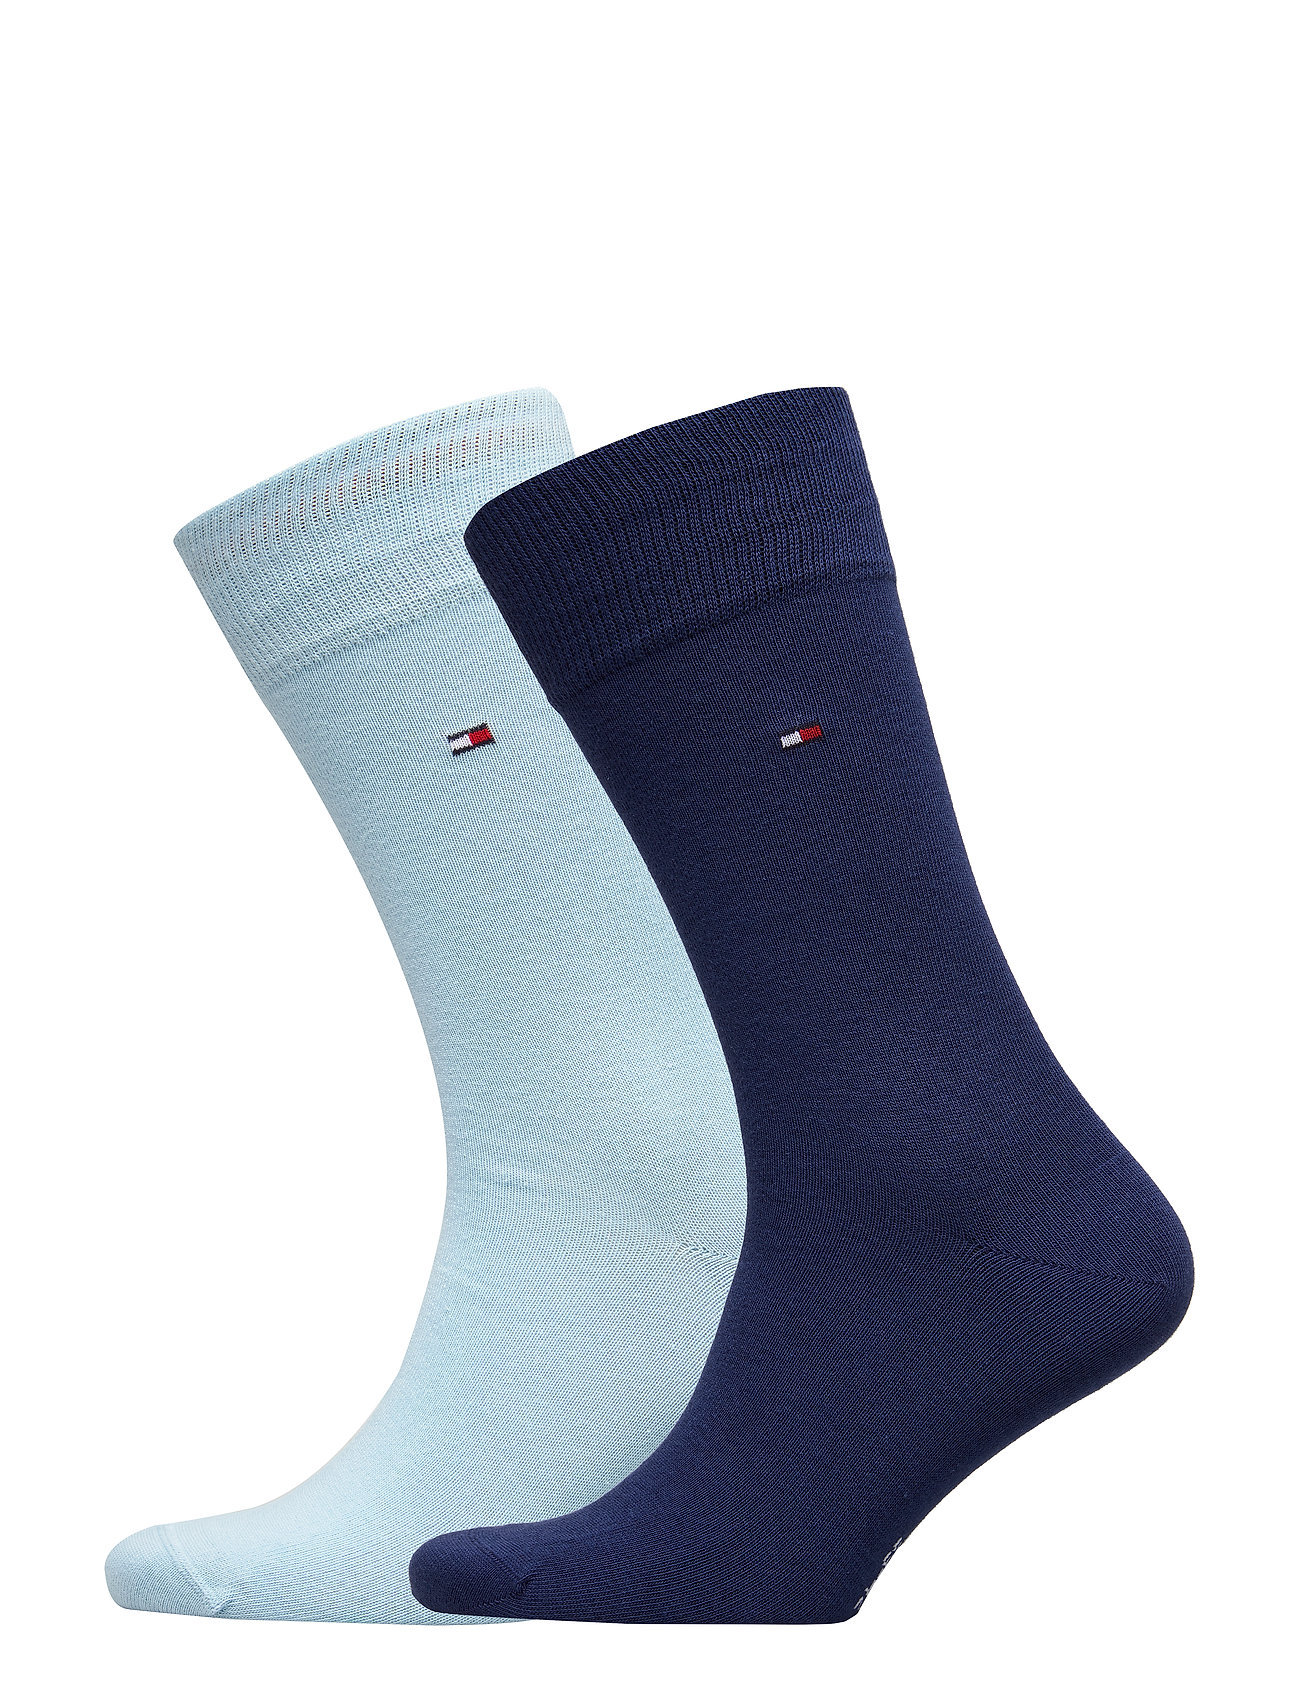 Tommy Hilfiger SOCKS 2-PAIRS - LIGHT BLUE